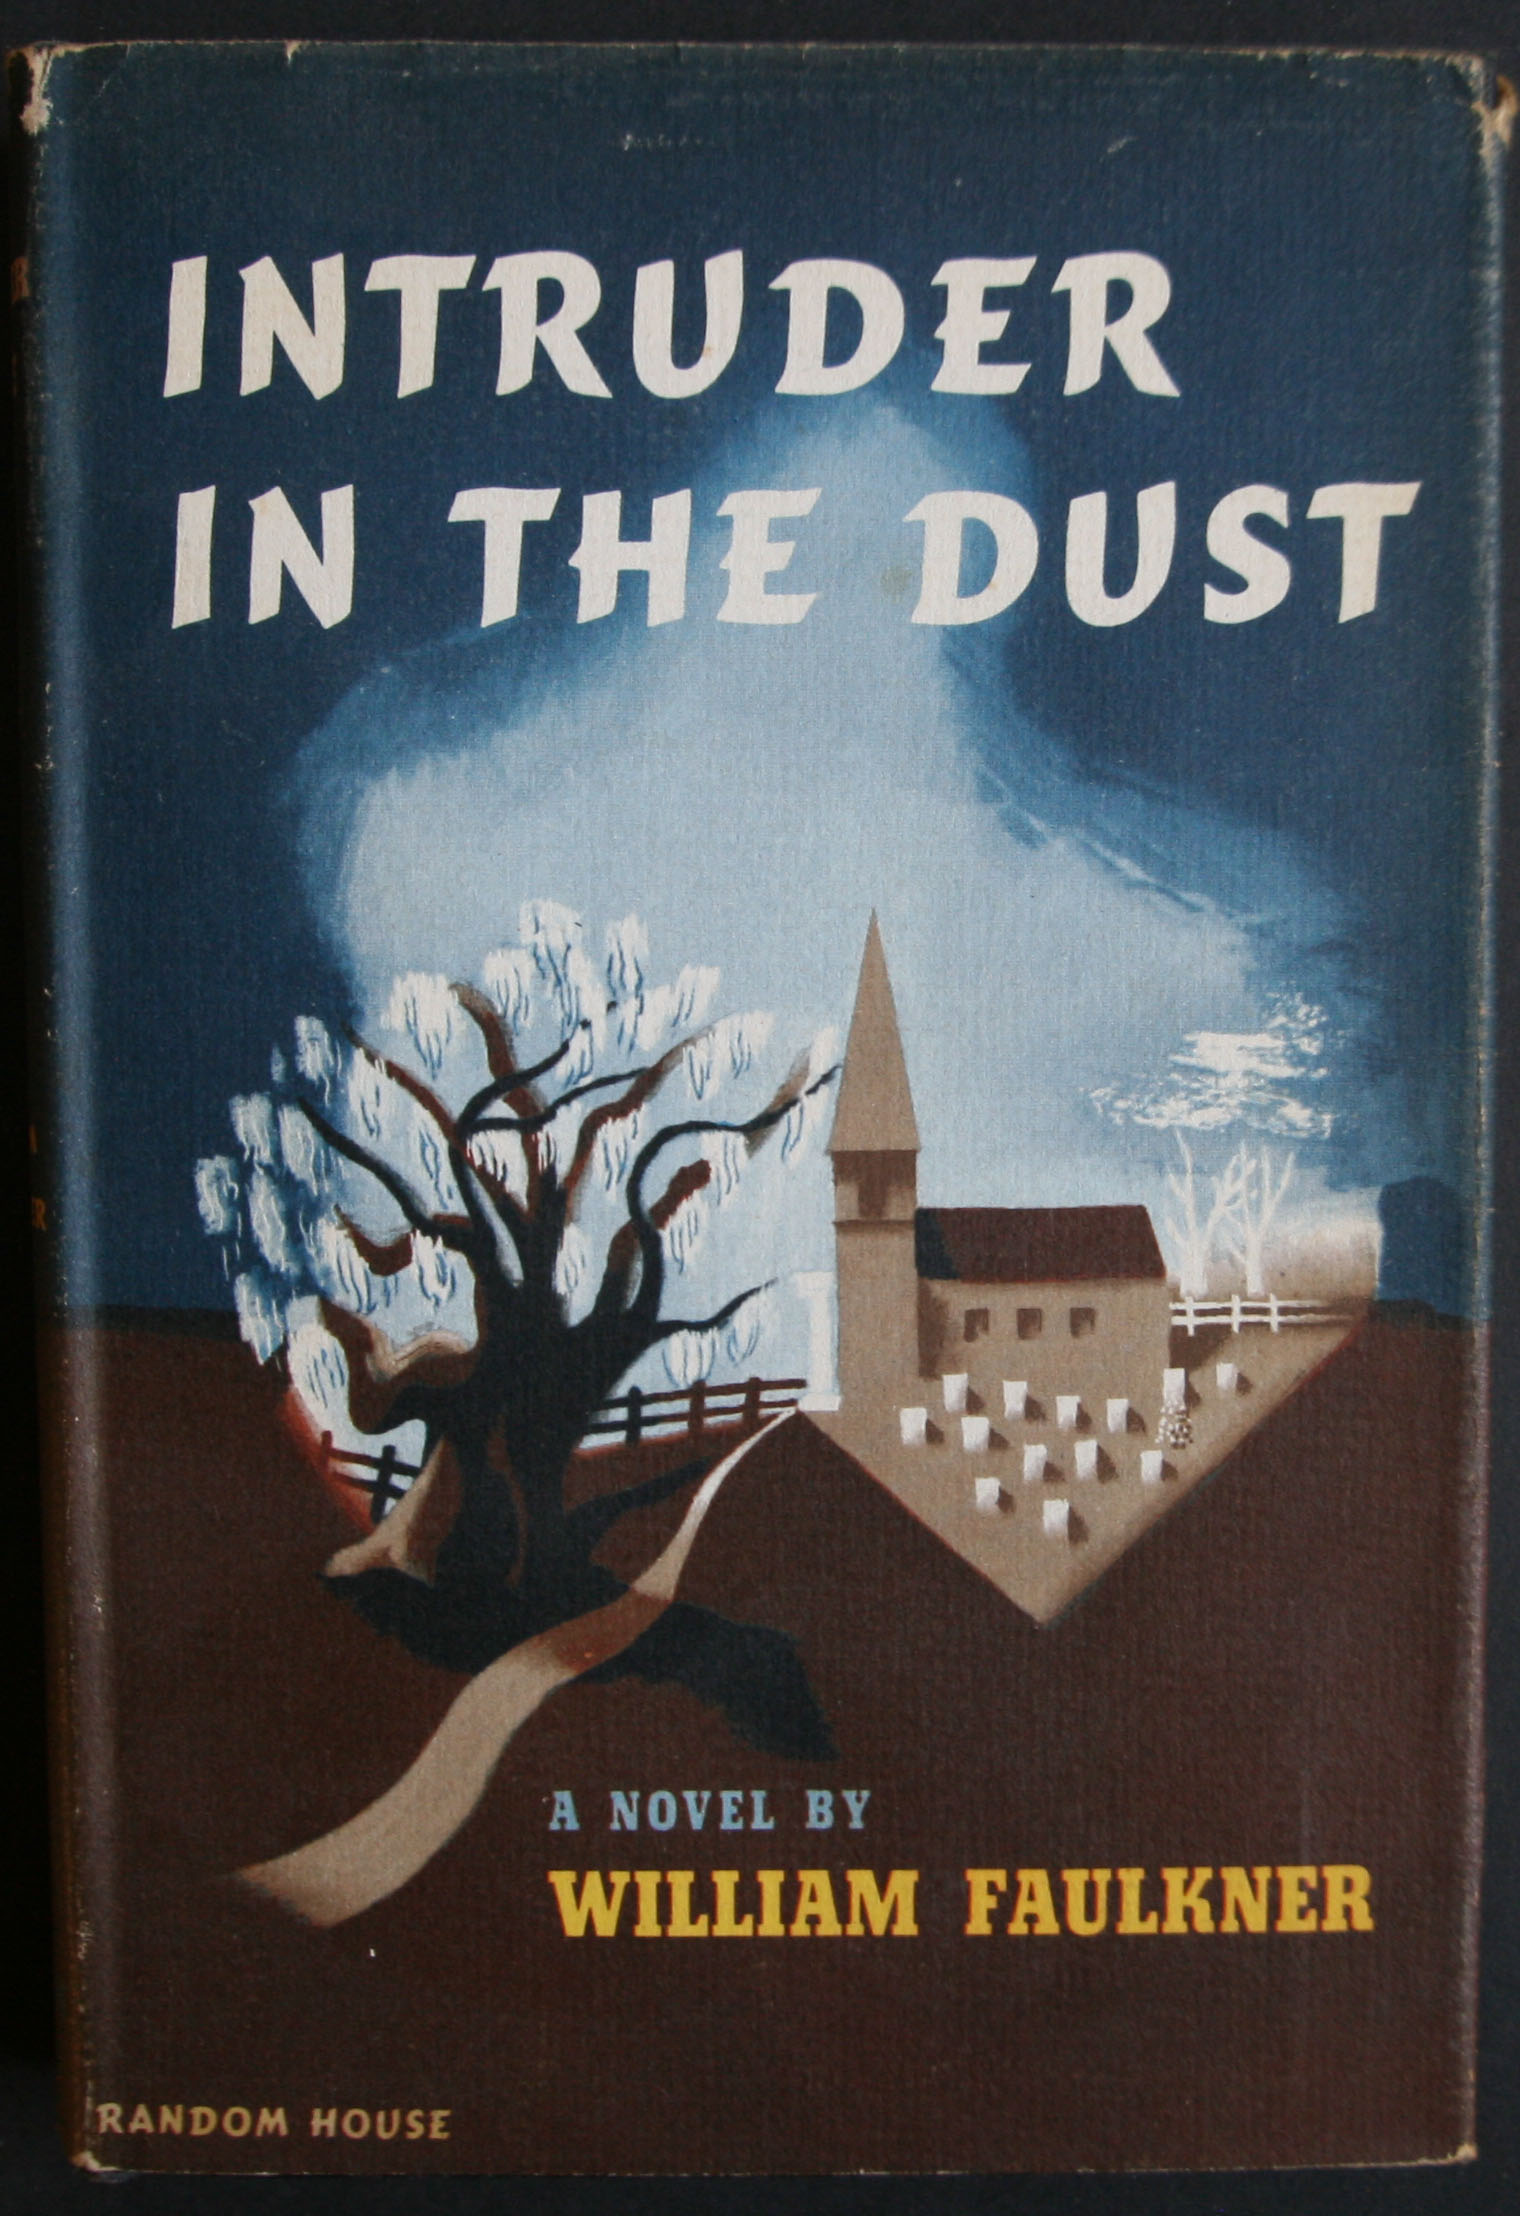 William Faulkner Intruder In The Dust first edition